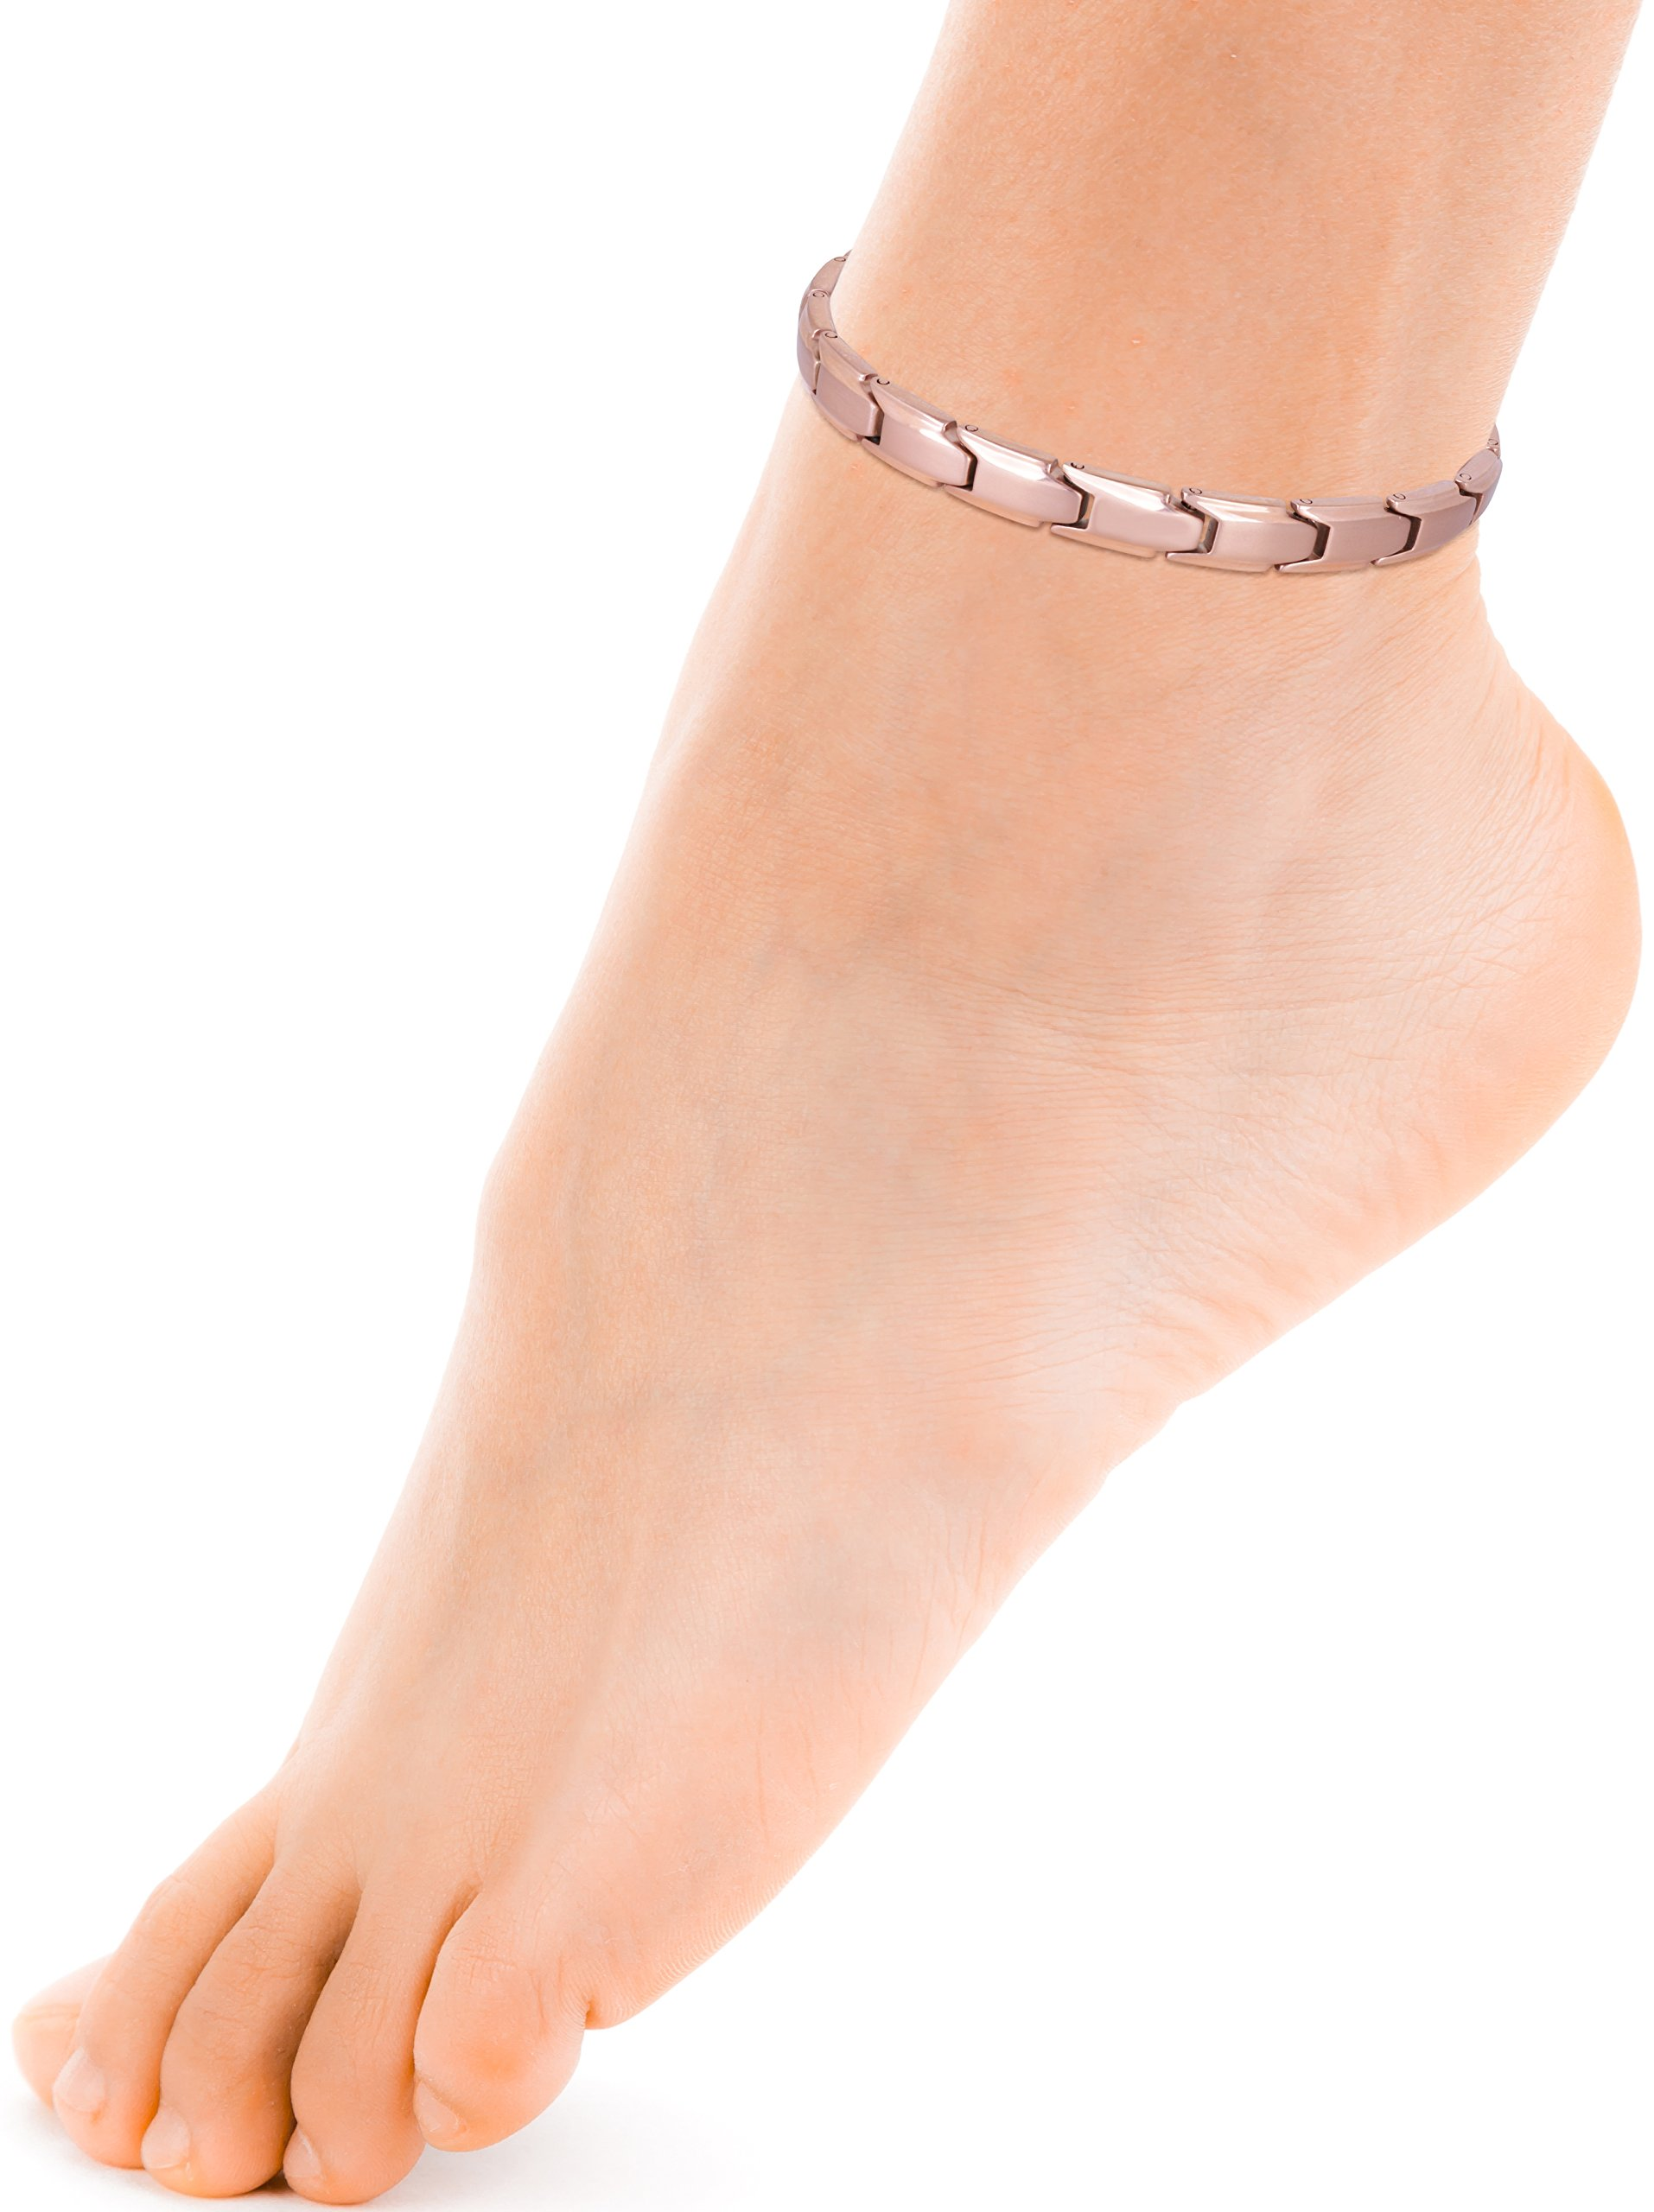 estate rose diamond gorgeous natural anklet brilliant bracelet contains itm sapphires pink sapphire wonderful tennis this and gold piece round